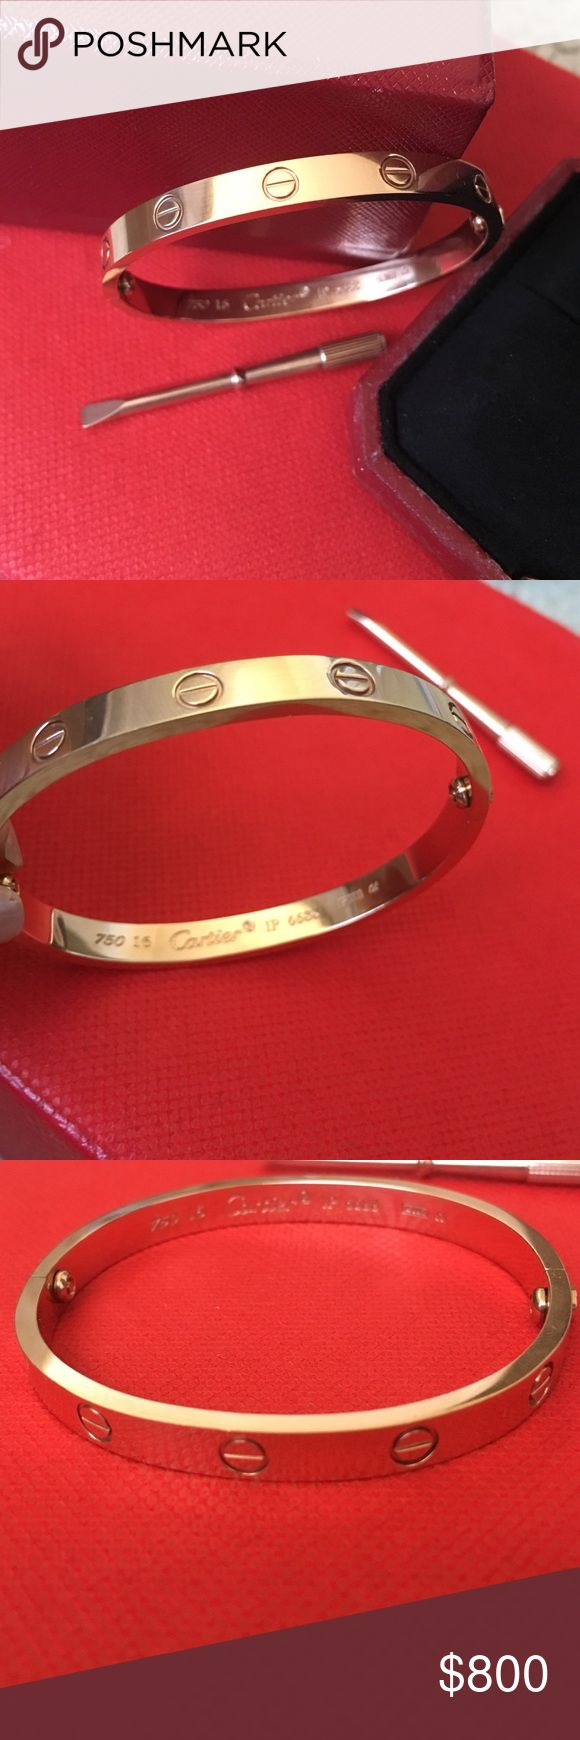 CARTIER Love bangle Rose gold plated size 16. Used it for 2 years still in very good condition. No fading/tarnishing even a scratch.Does not want to sell however bought the real cartier already. Bought this in korea for like a $1,500 as it is a VERY GOOD quality. Just want to sell for half the price only. Cartier Jewelry Bracelets